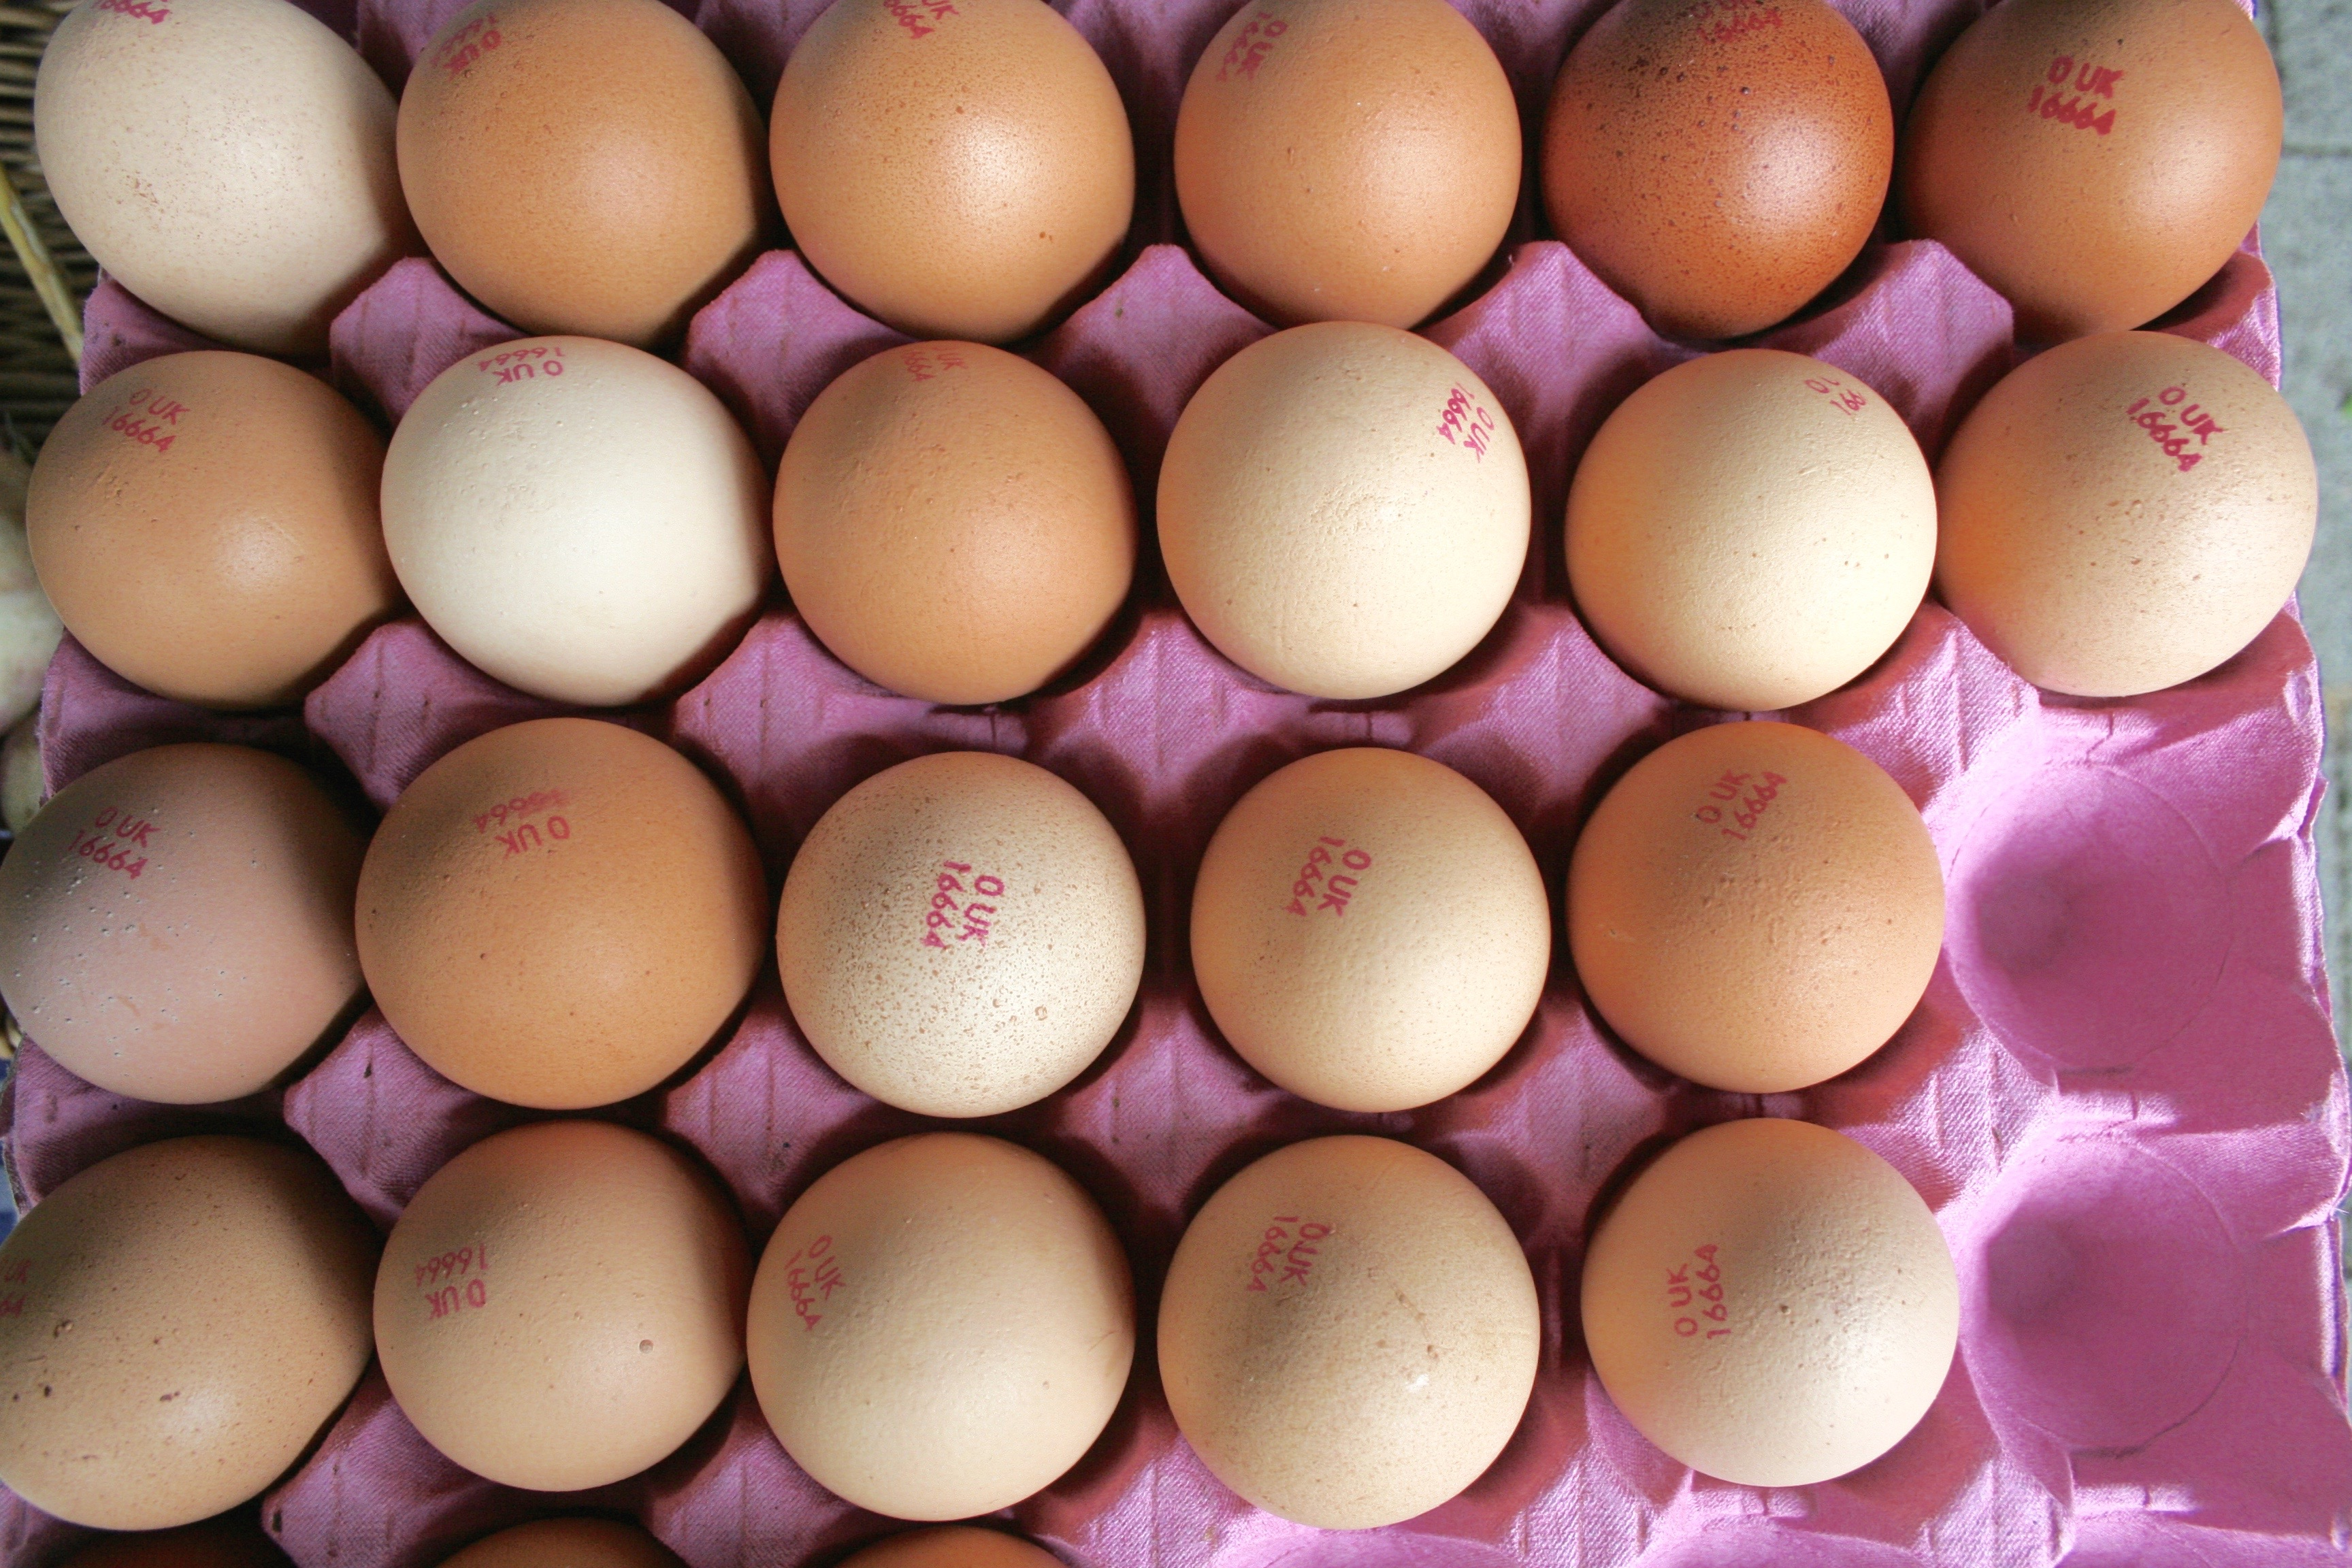 Ethical Eggs – Free-range vs Organic